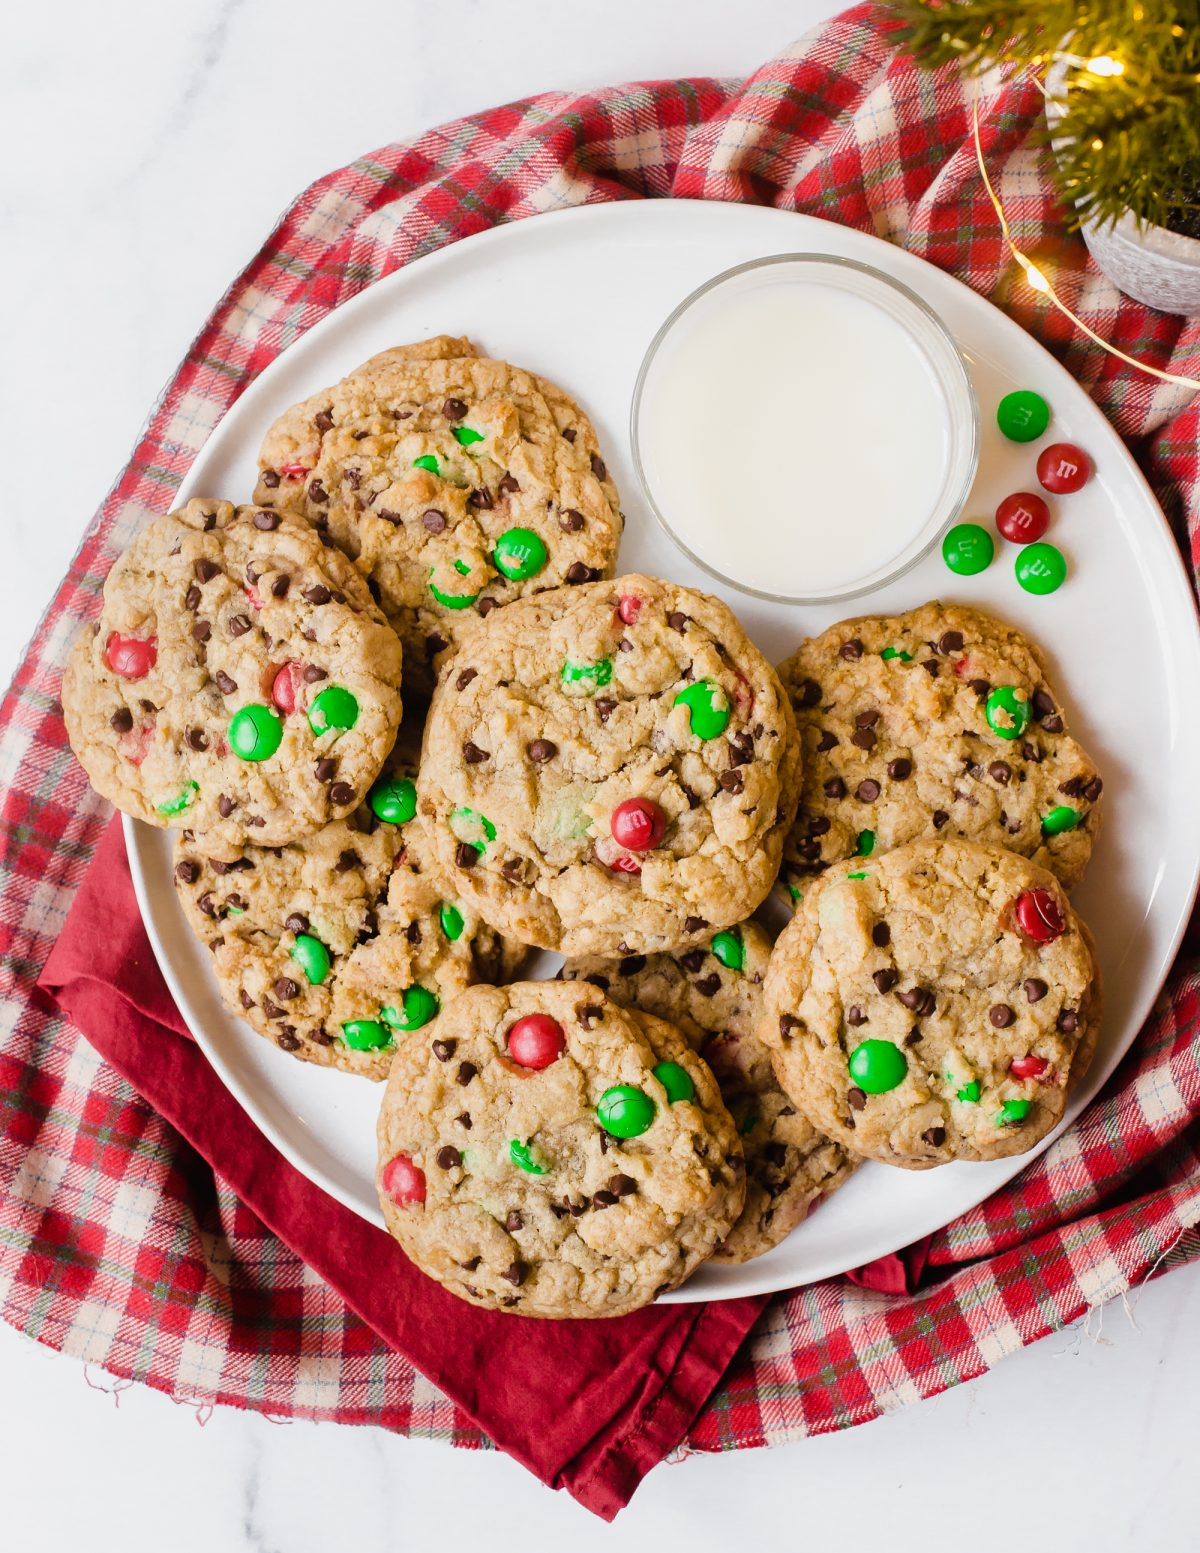 Overhead shot of a plate of Chocolate Chip M&M Christmas cookies with a glass of milk